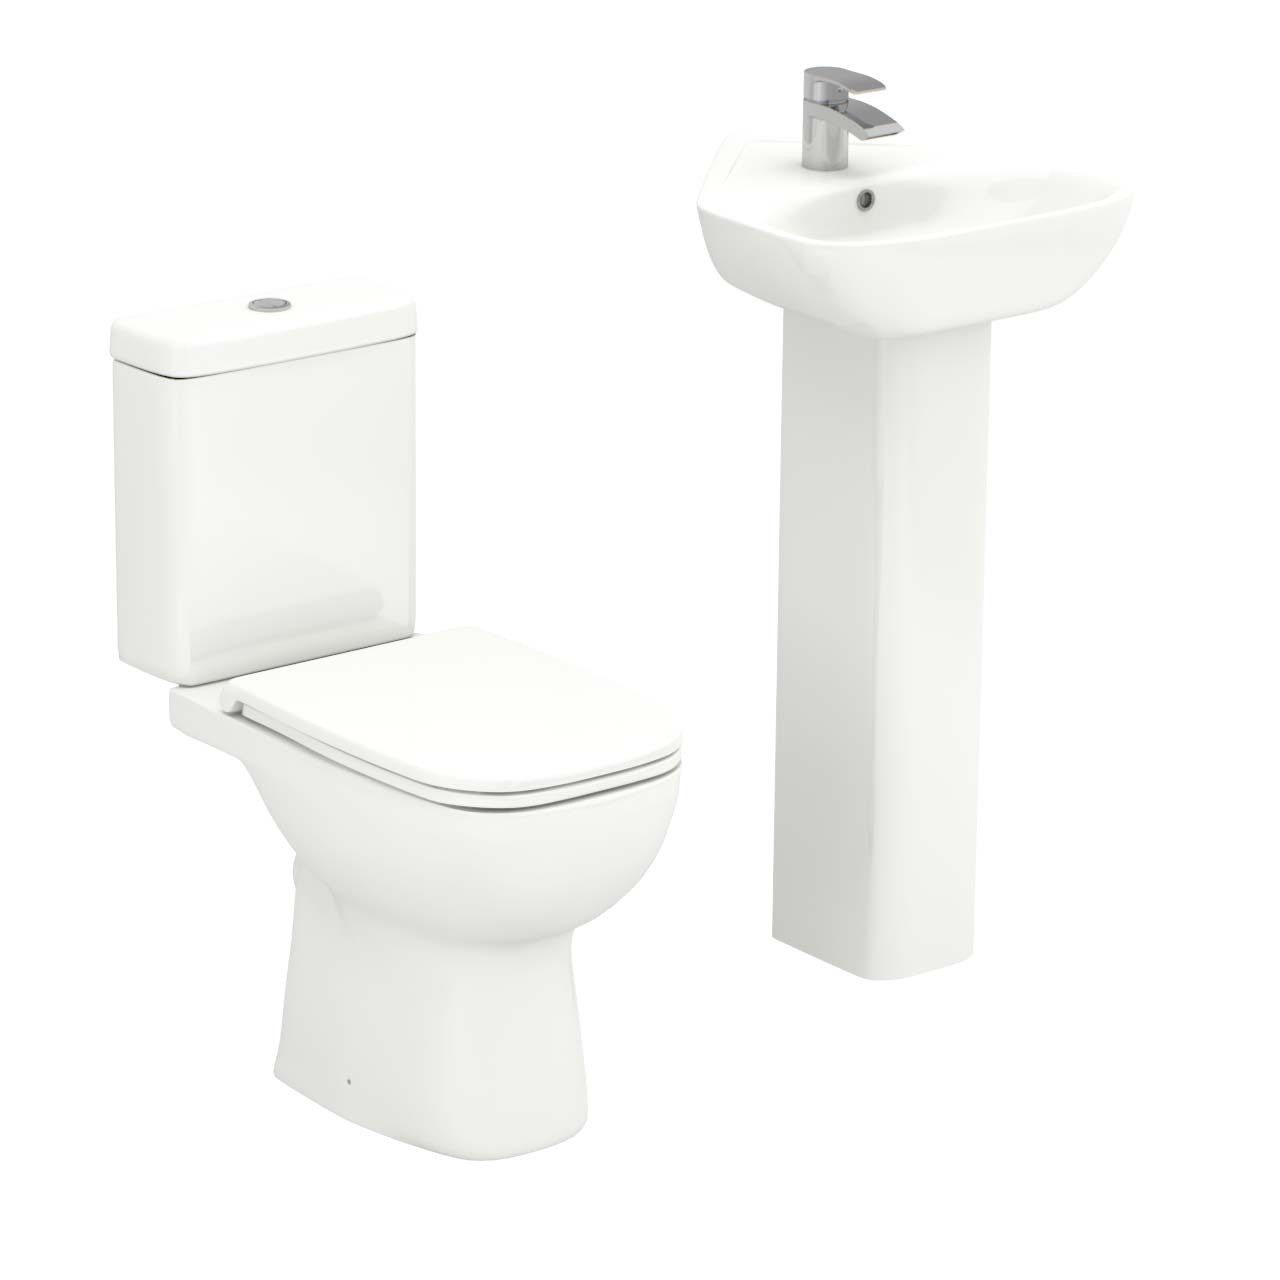 Forth Corner Full Pedestal Basin & Toilet Suite